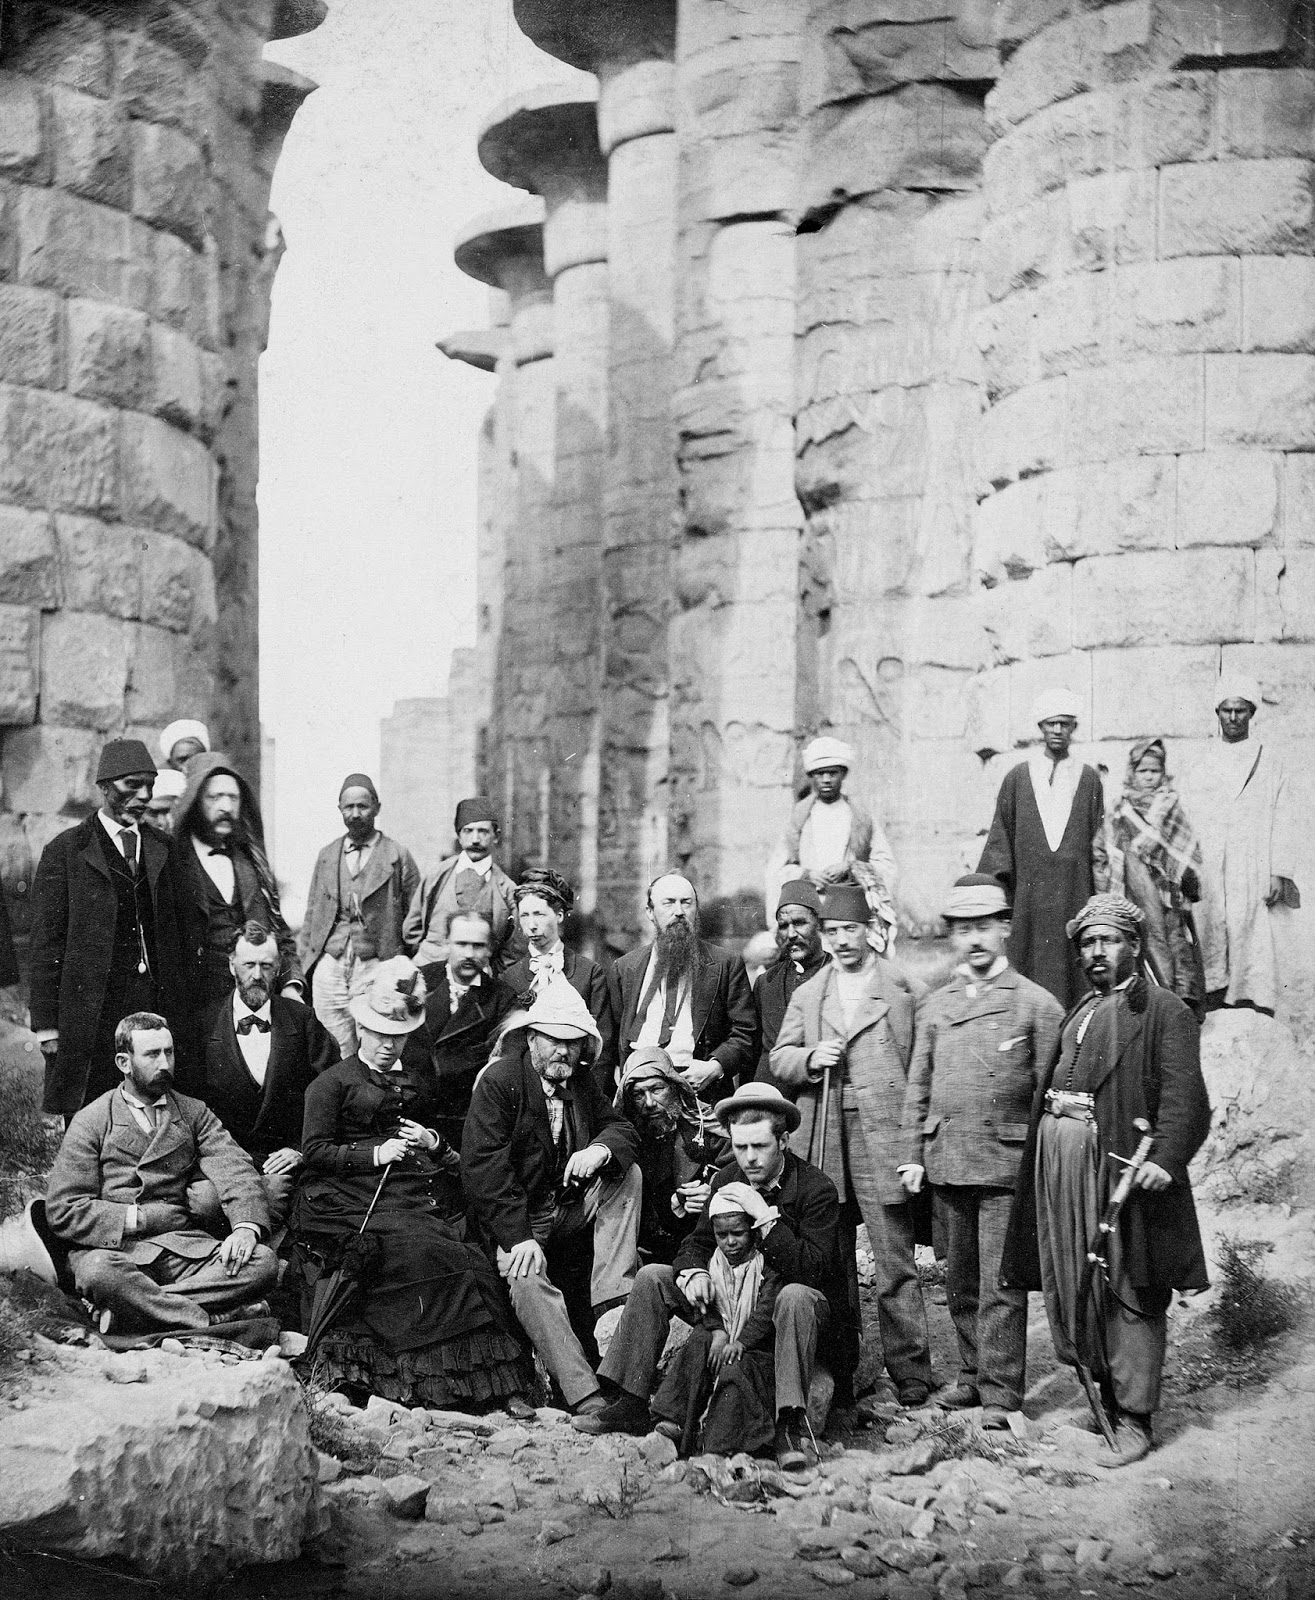 Ulysses S Grant Posing With Family Members Entourage And Locals At The Karnak Temple Complex In Egypt 1870s